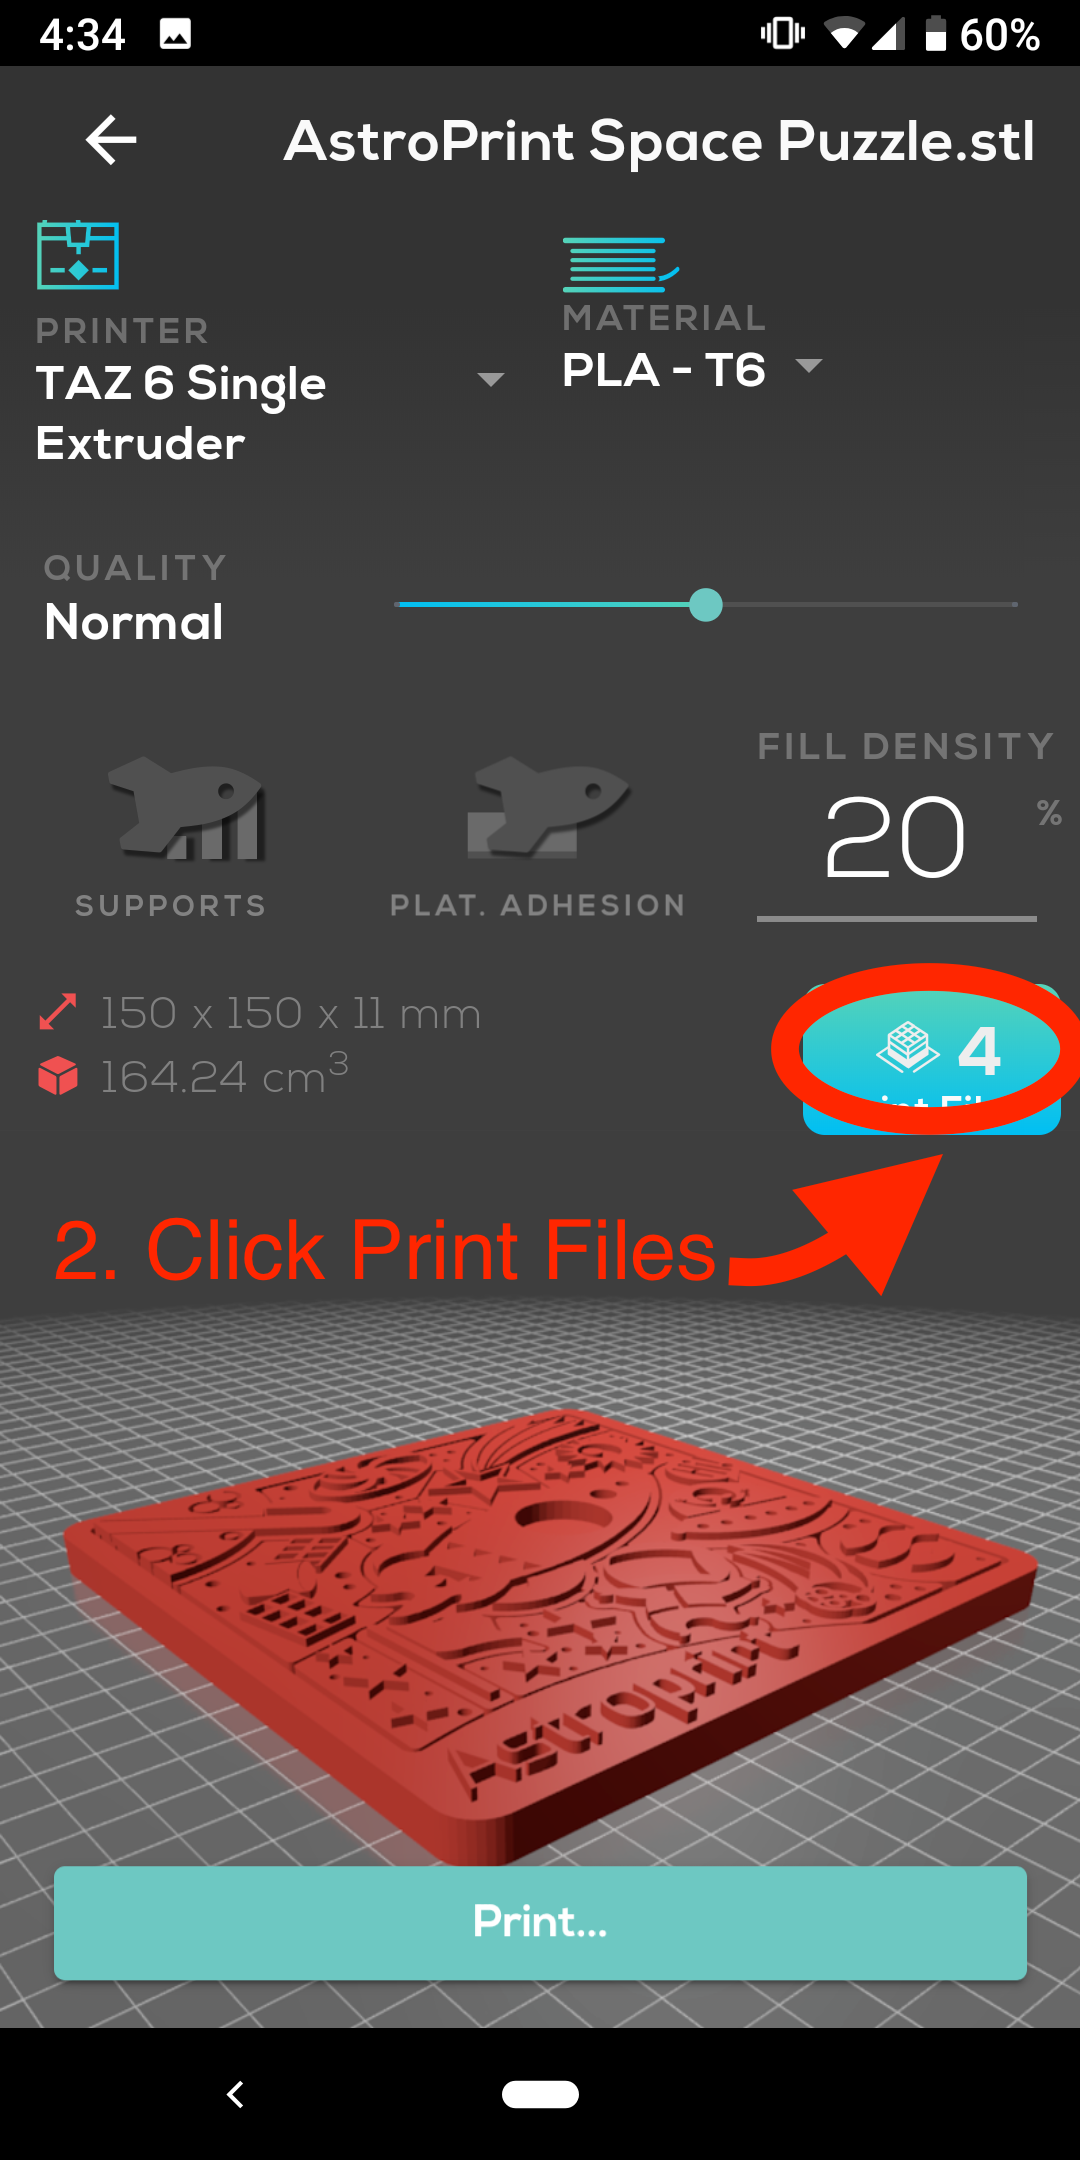 AstroPrint_Mobile_Print_Queueing_Walkthrough_Print_File_Button.png